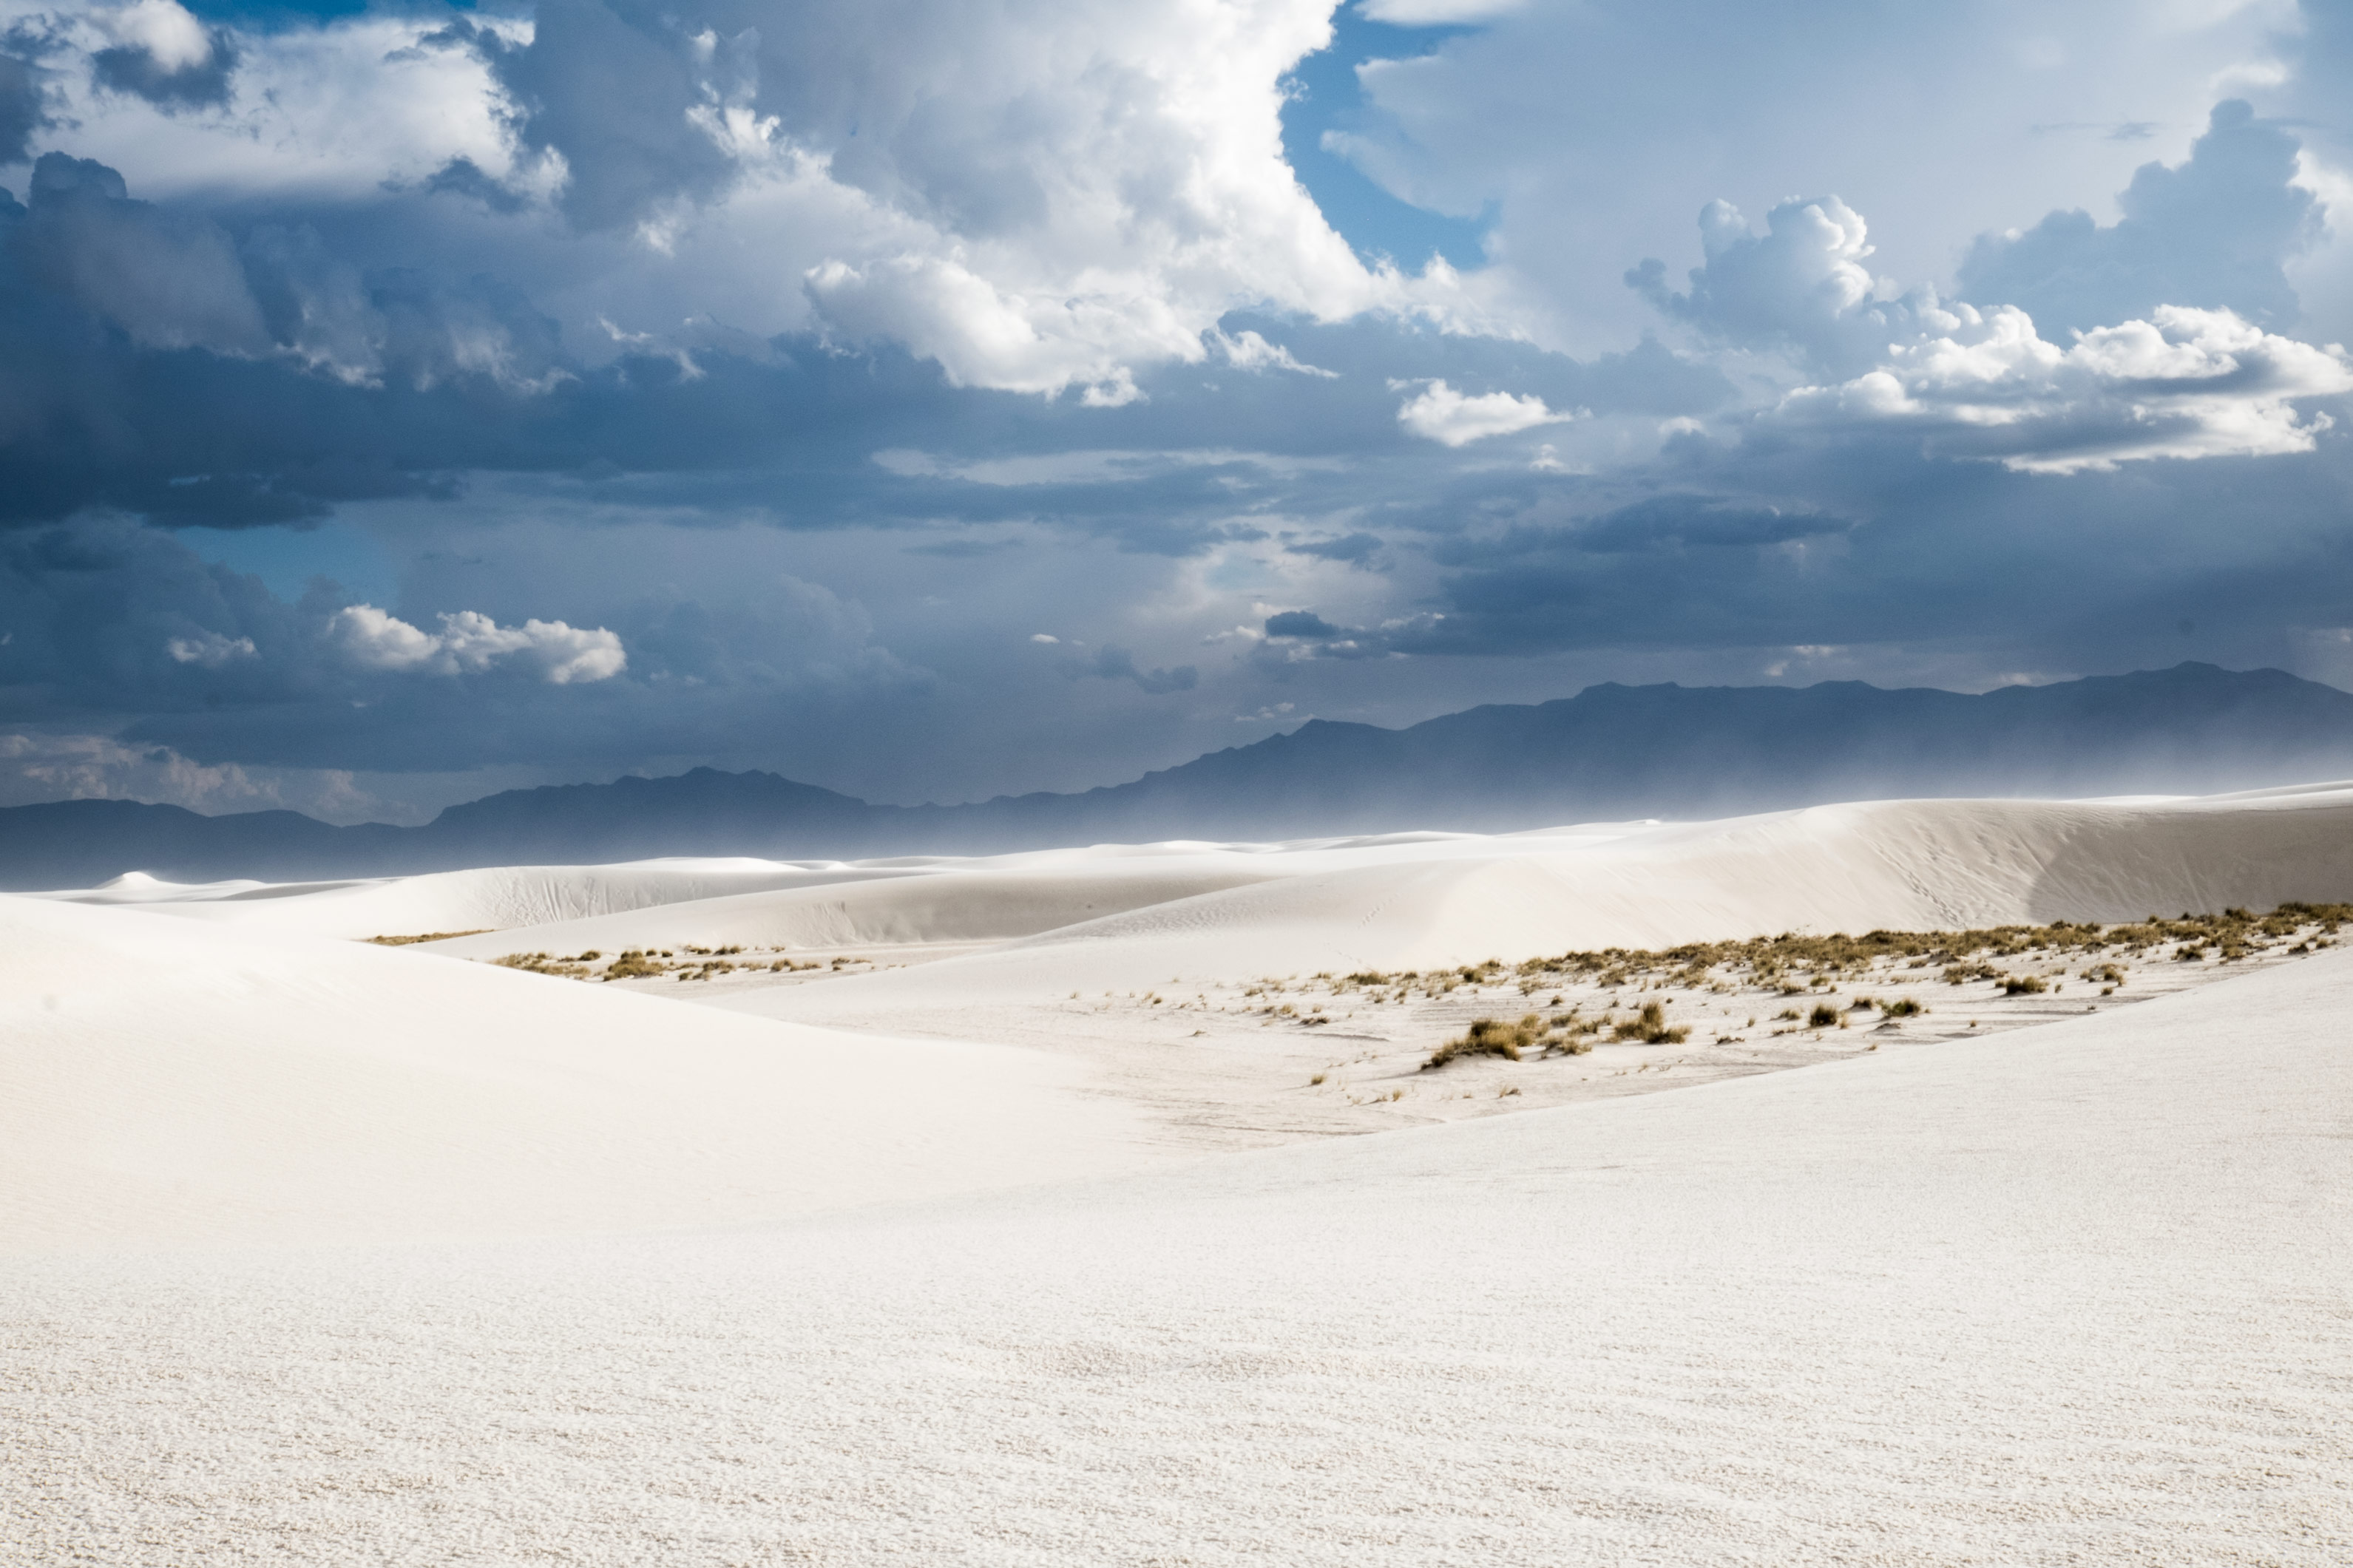 white sands national monument, new mexico, land of enchantment, alamogordo, photography, professional photographer,  sand dunes, white sand dunes, national park, national park service, NPS,